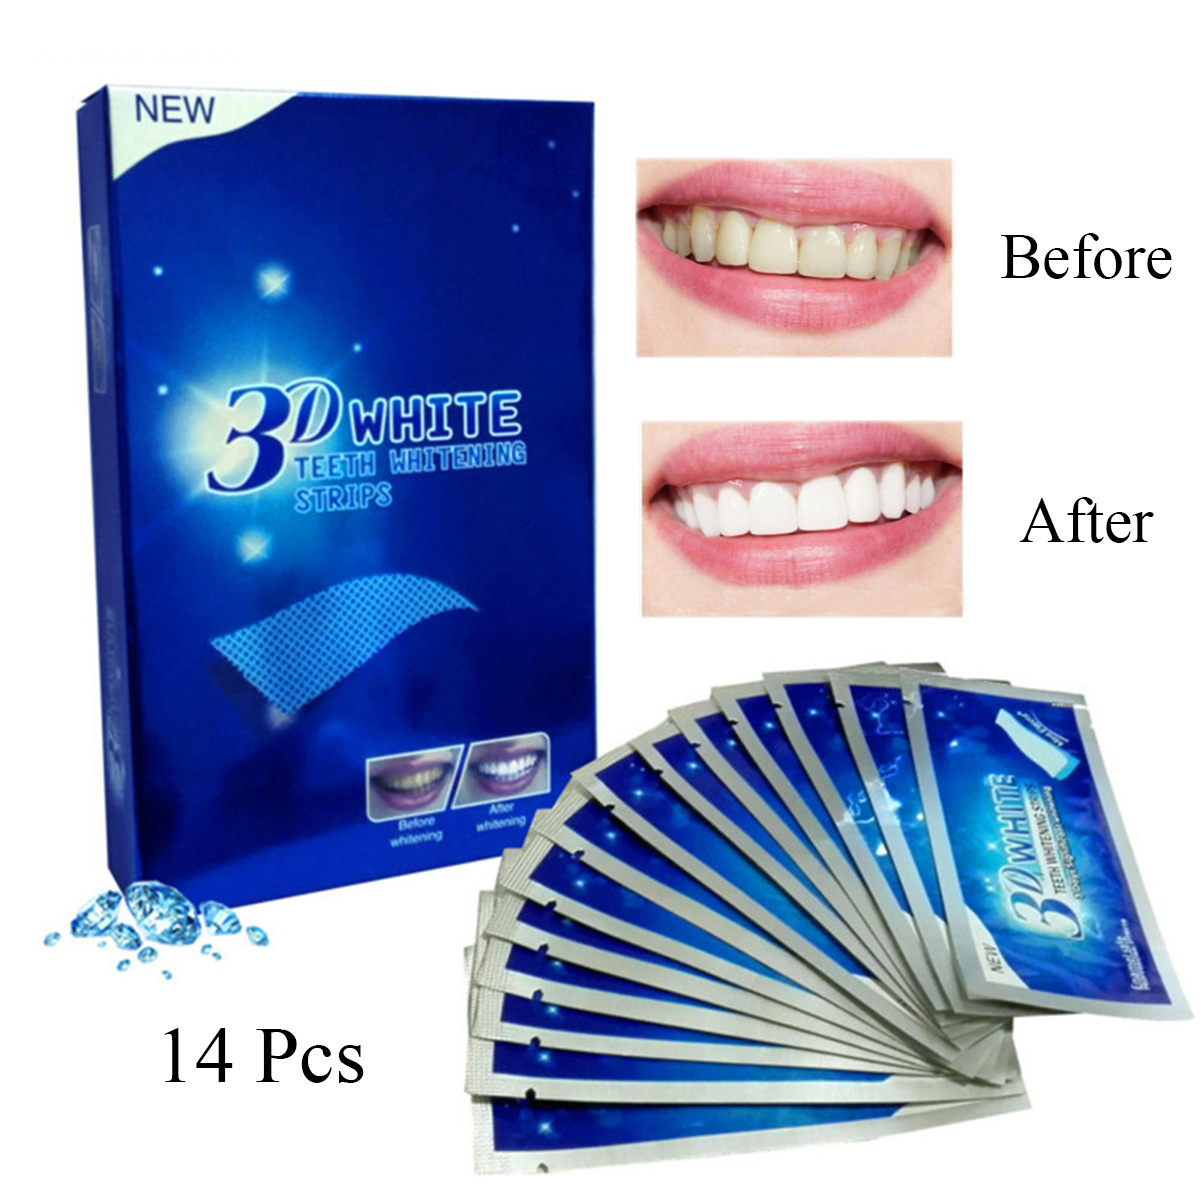 3D White Whitestrips Professional Bleaching Whitening Teeth Effects 14 Pouches 28 Strips